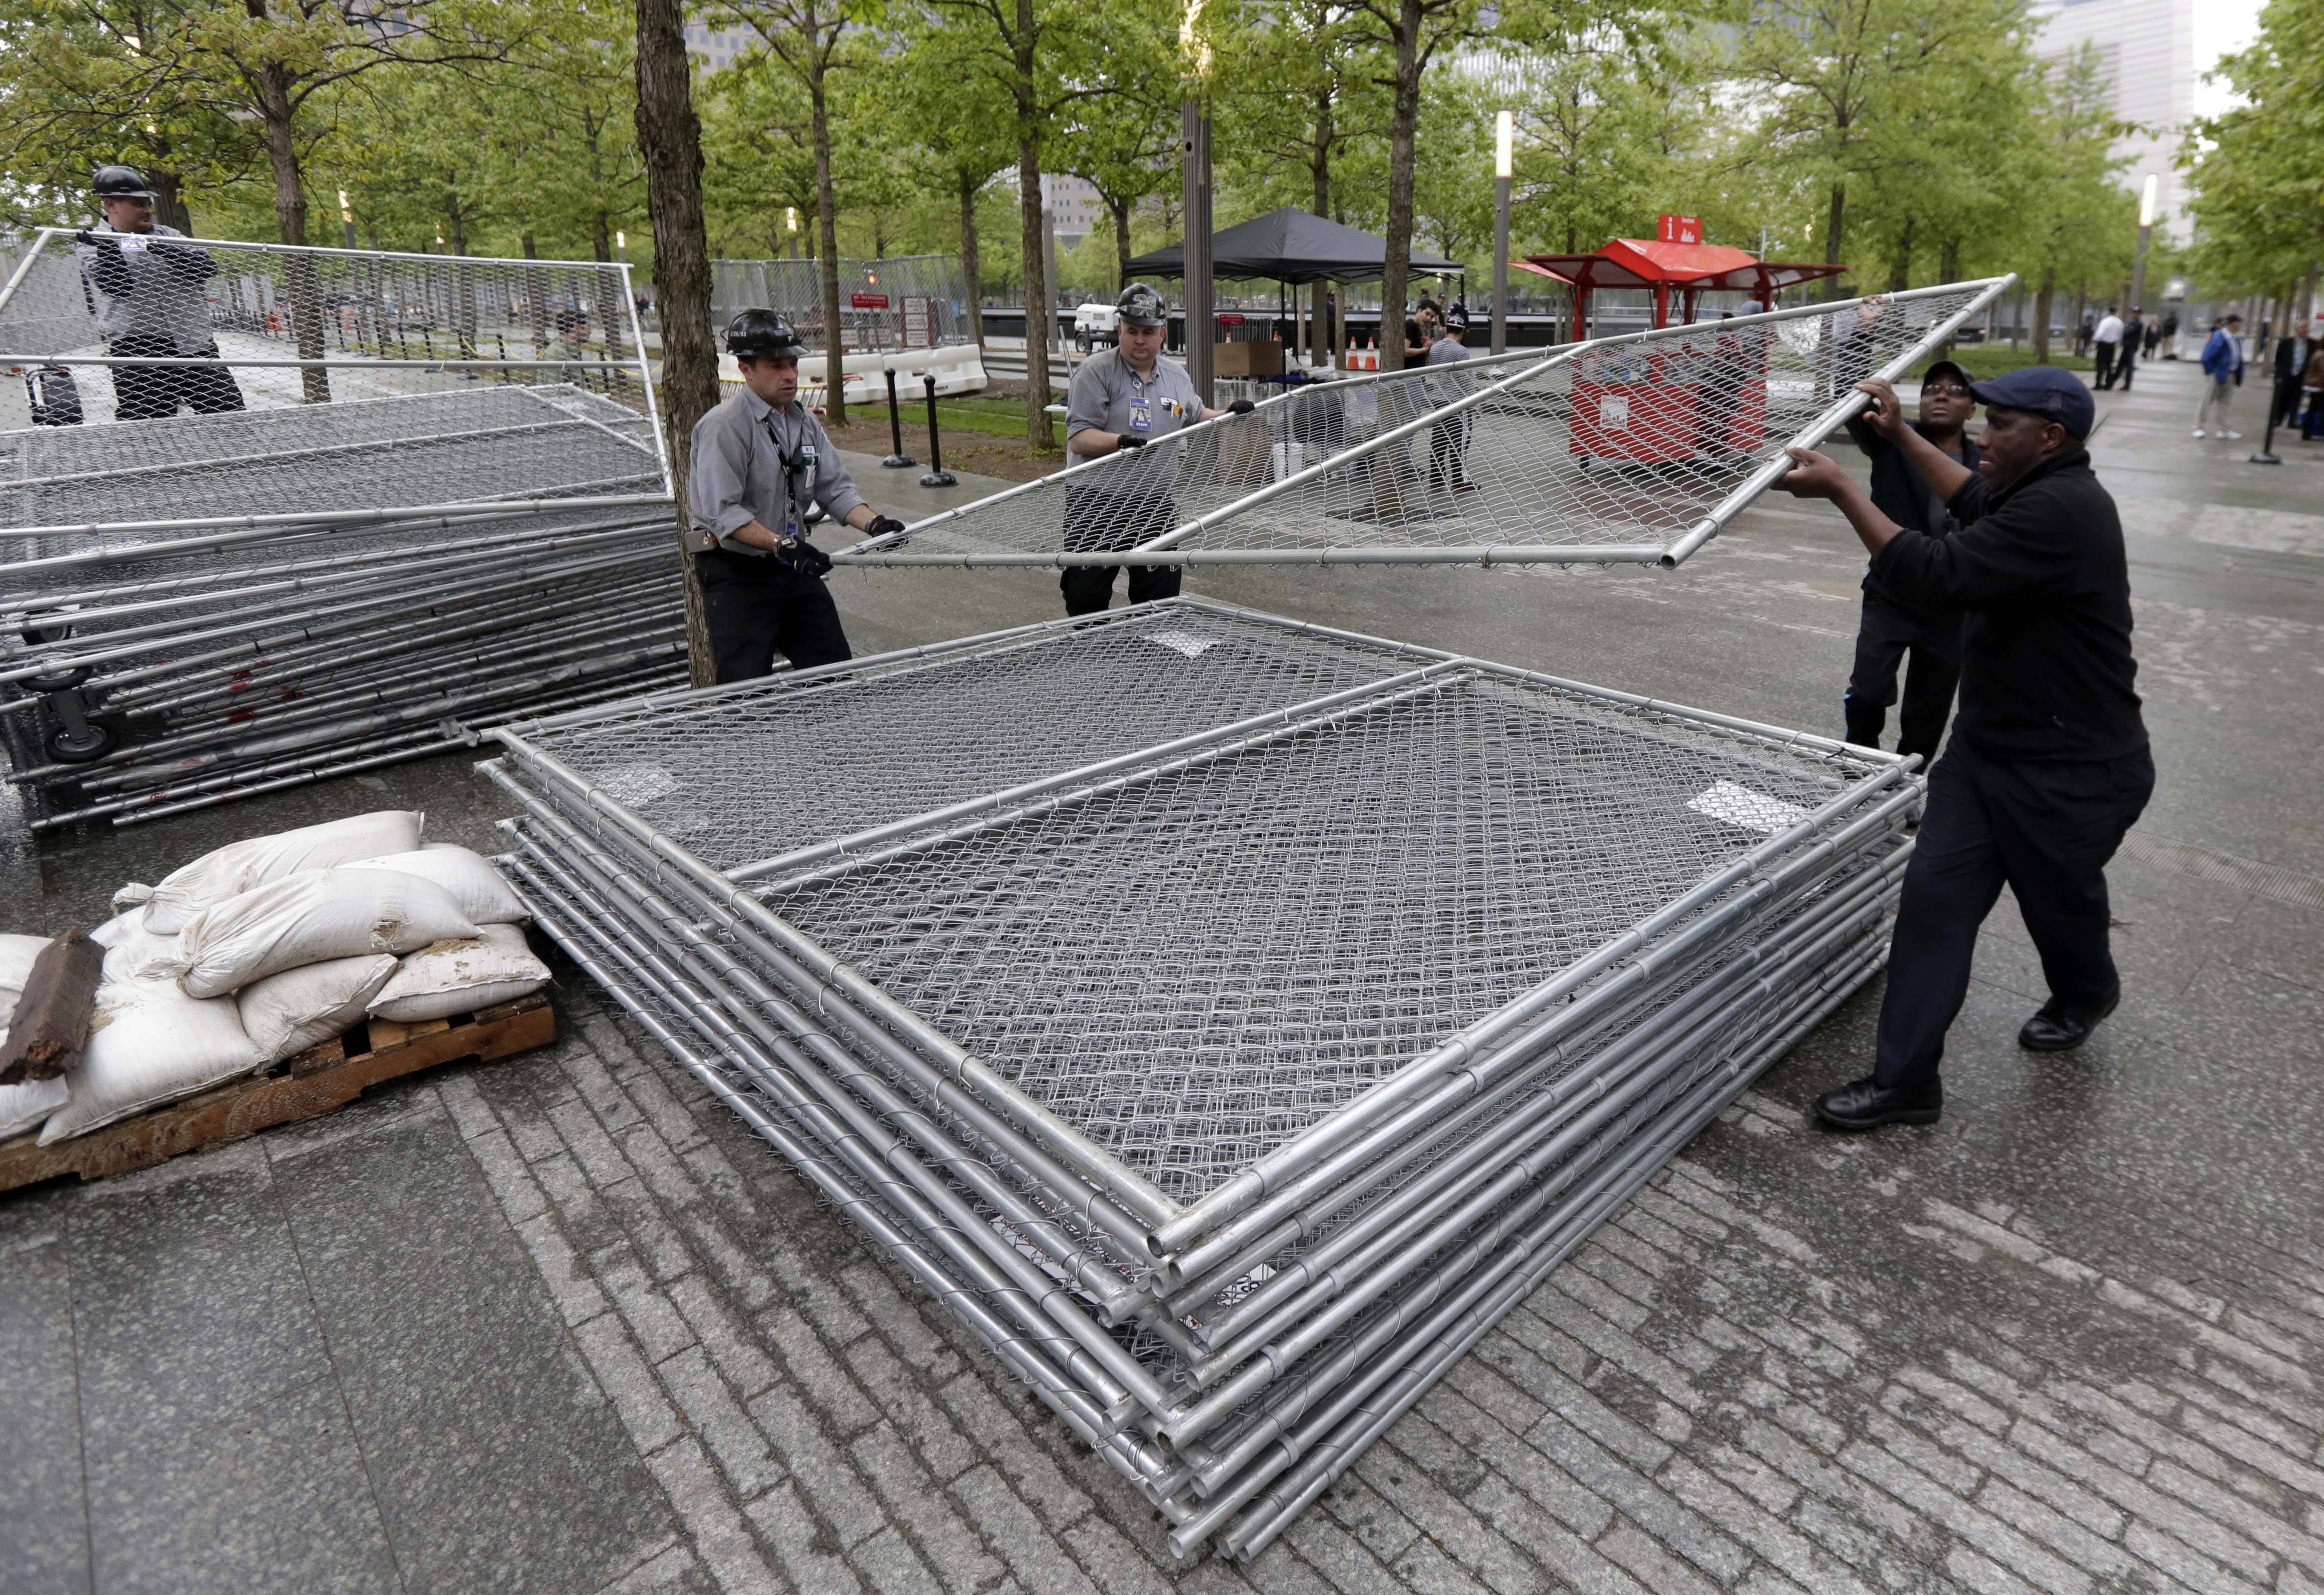 Workers on the plaza of the National September 11 Memorial & Museum stack sections of fencing removed from the venue's perimeter, in New York, Thursday, May 15, 2014.